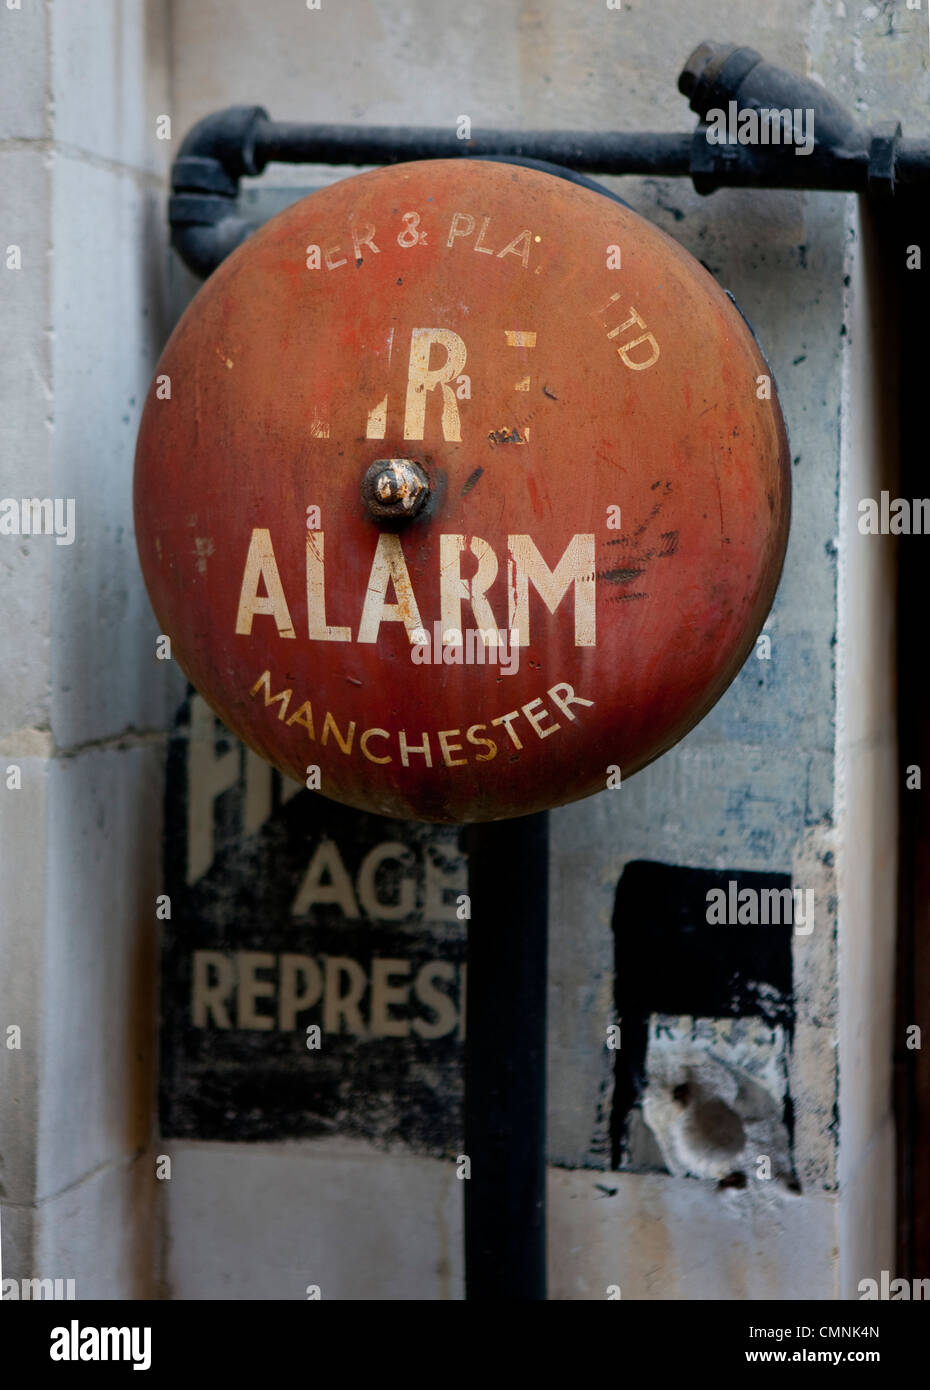 Old alarm bell - Stock Image